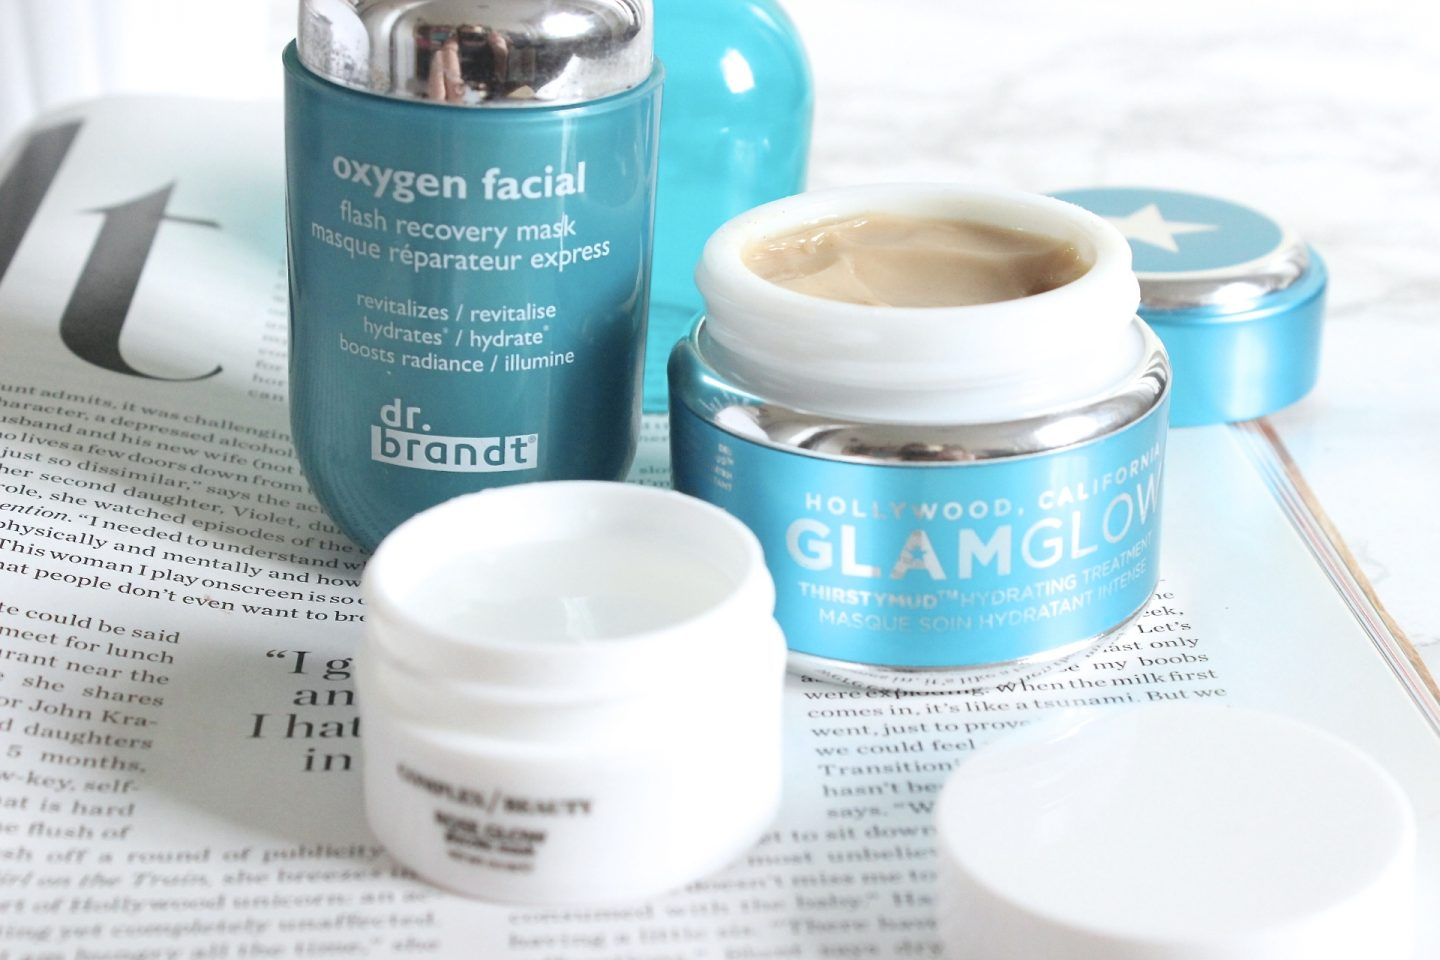 Dr Brandt Oxygen Facial, Glamglow Thirstymud, Complex Beauty Rose Glow